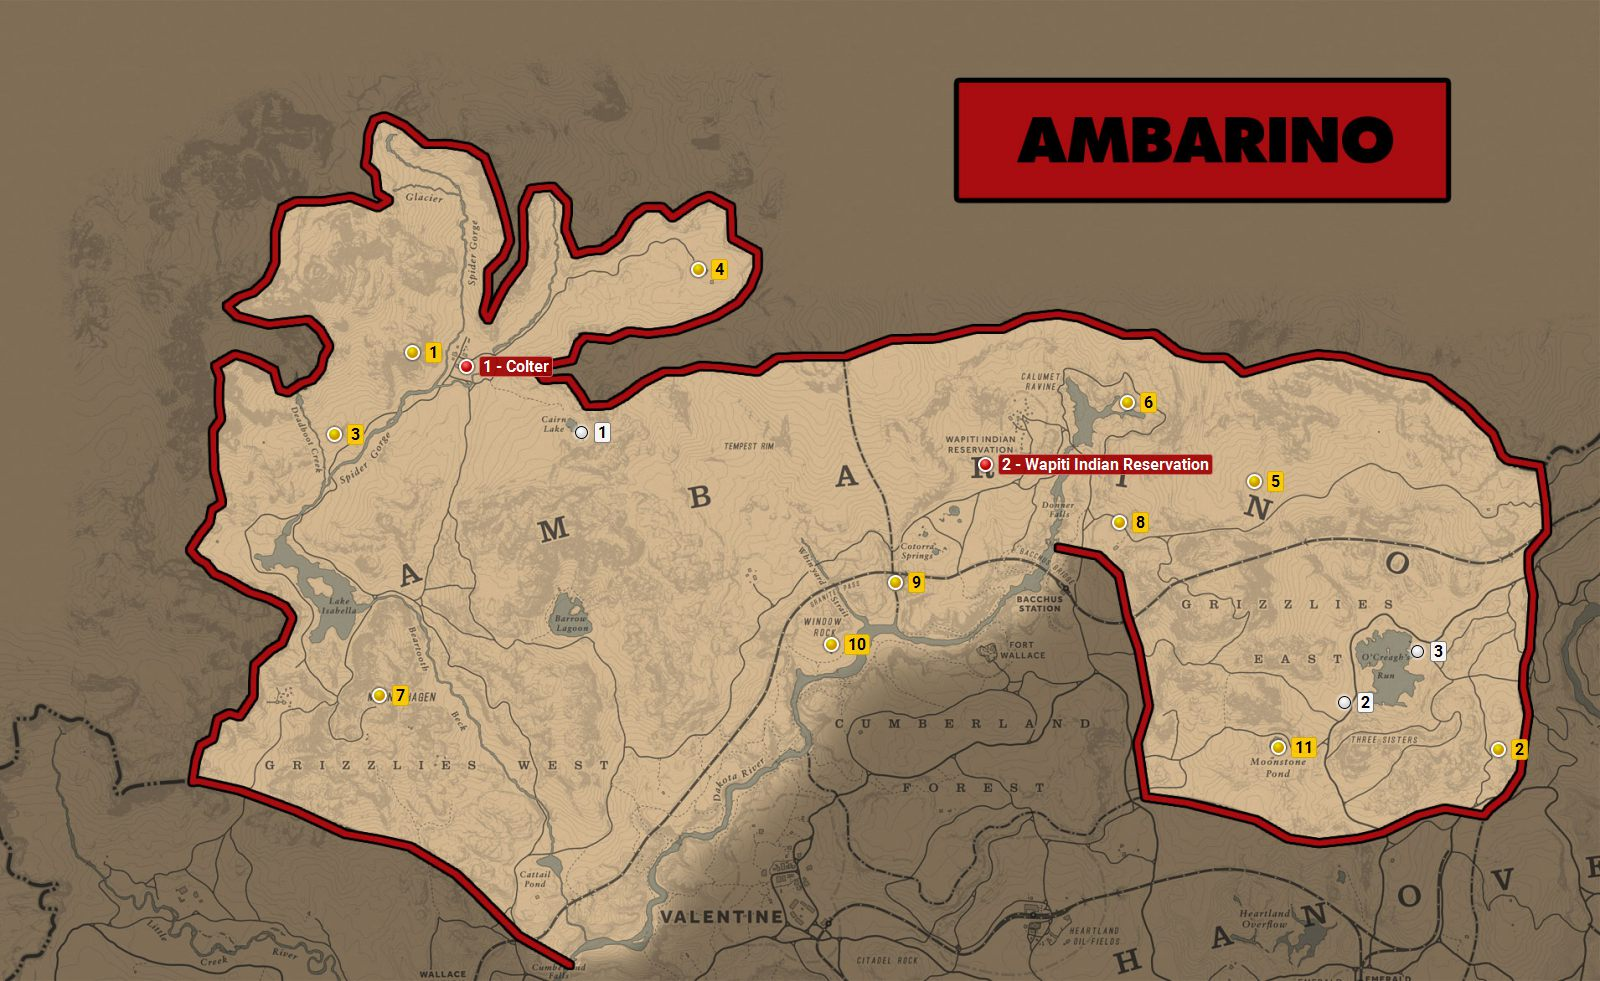 Rdr2 Karte Pdf.Ambarino Red Dead Redemption 2 World Atlas Map Red Dead